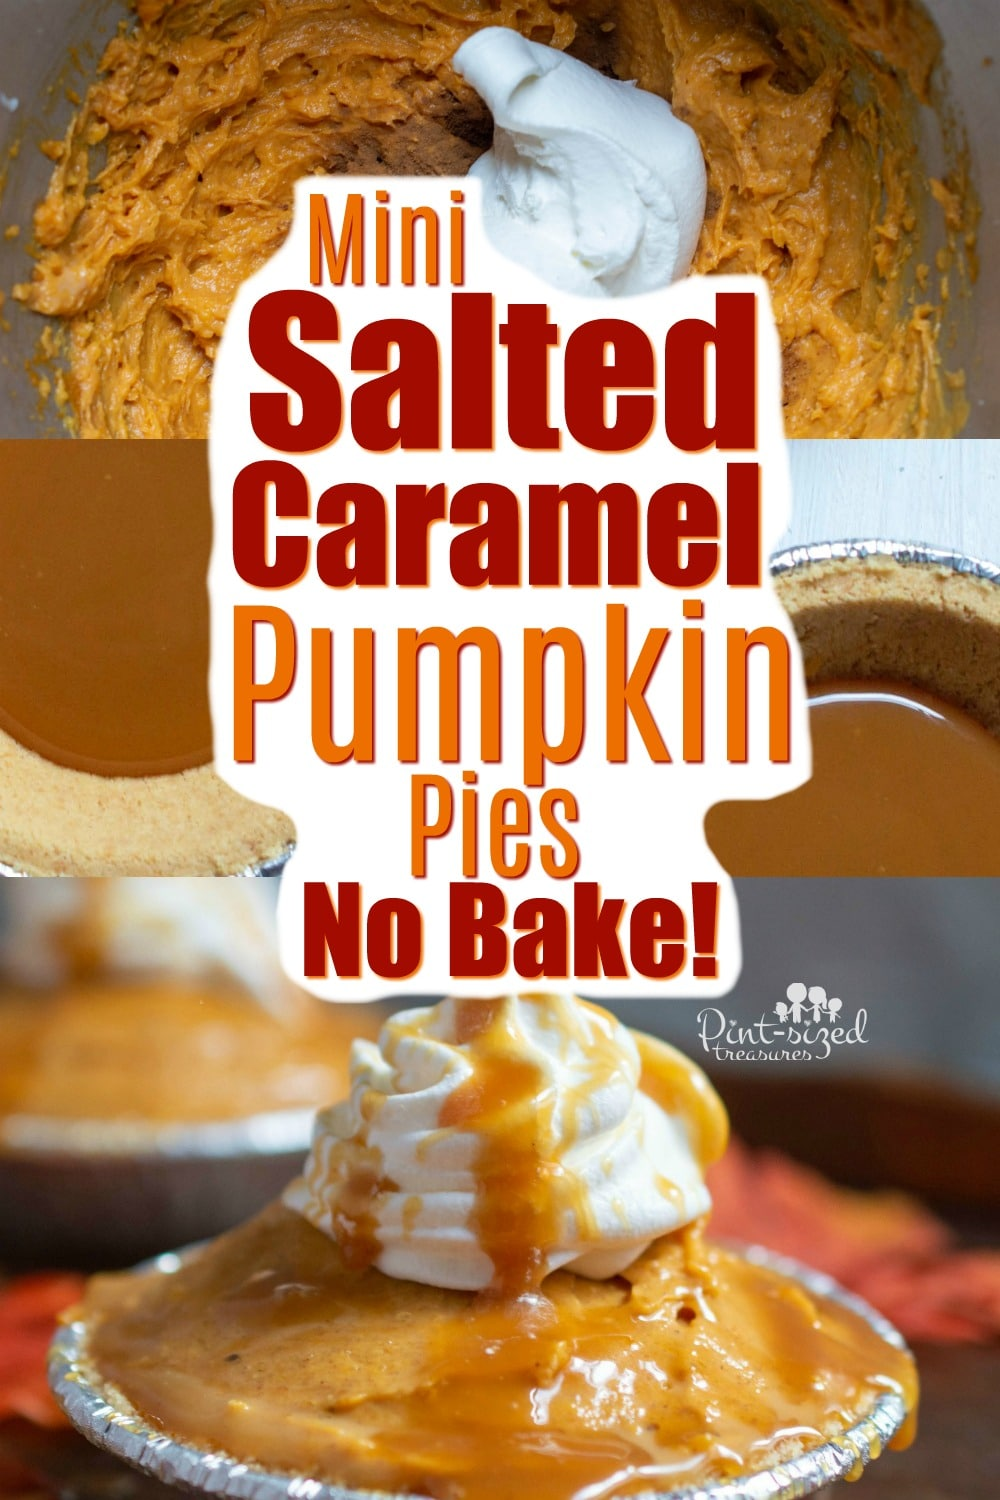 mini salted caramel pumpkin pie recipe